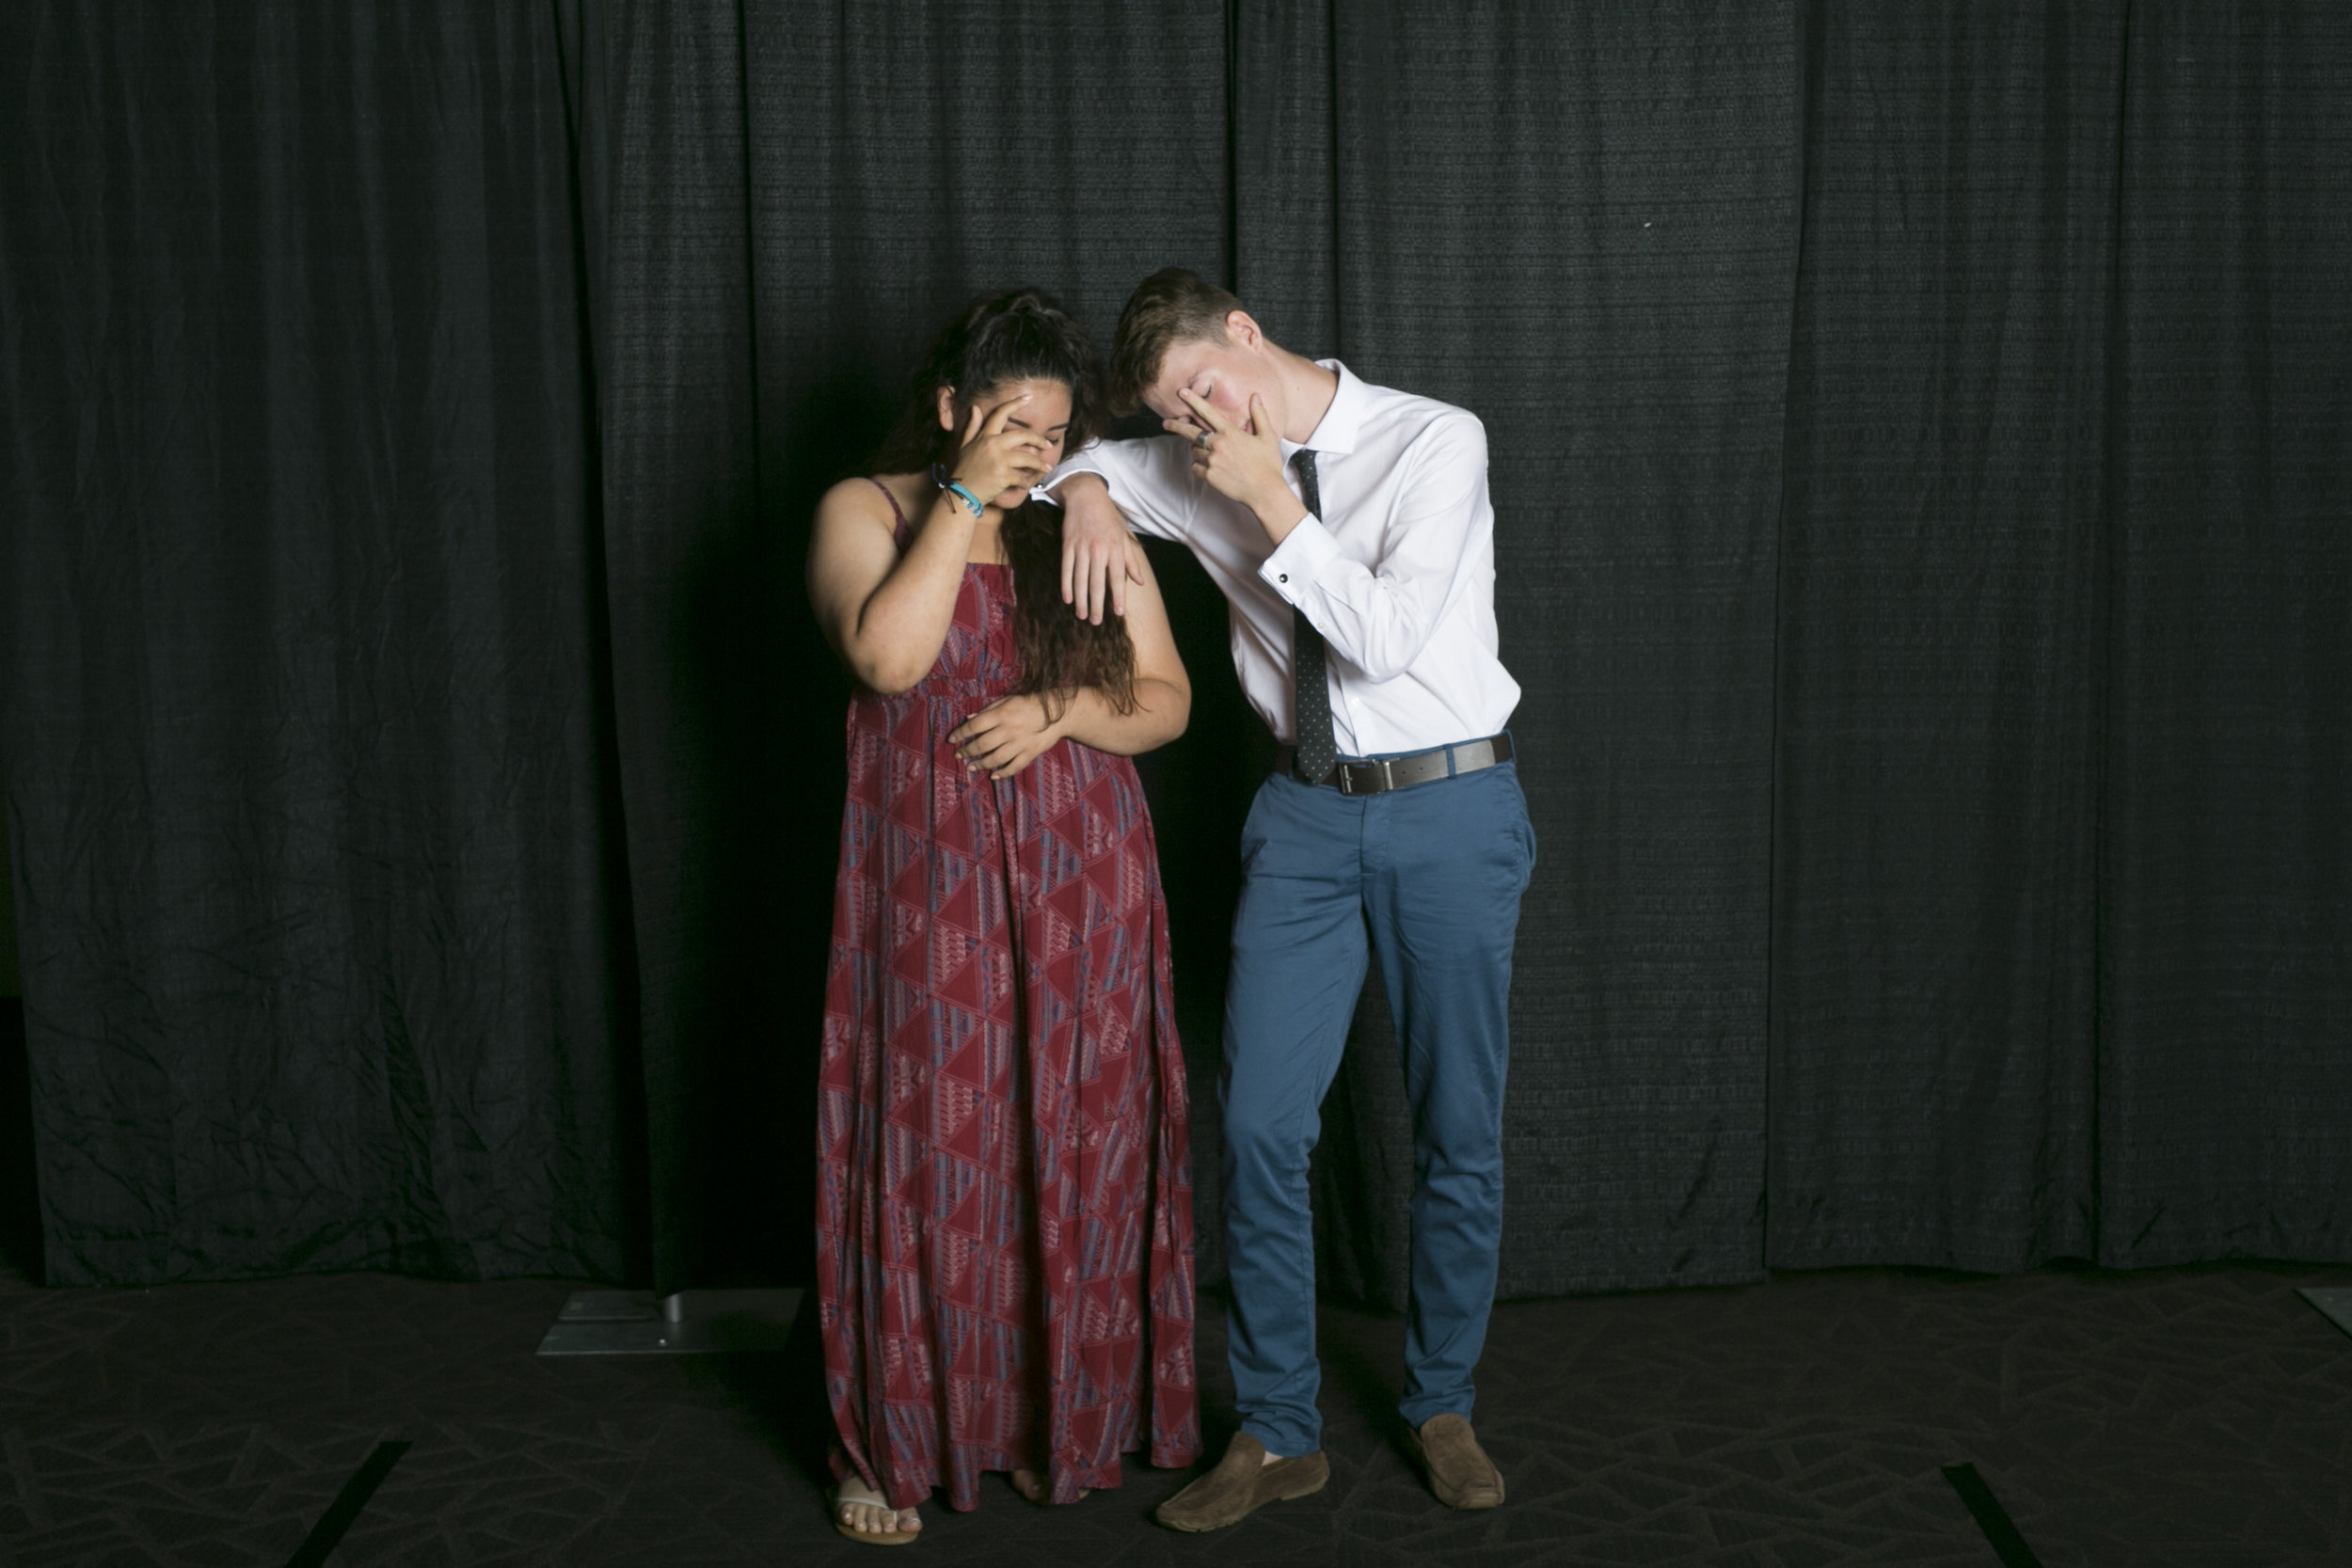 wedding photo booth-4.jpg